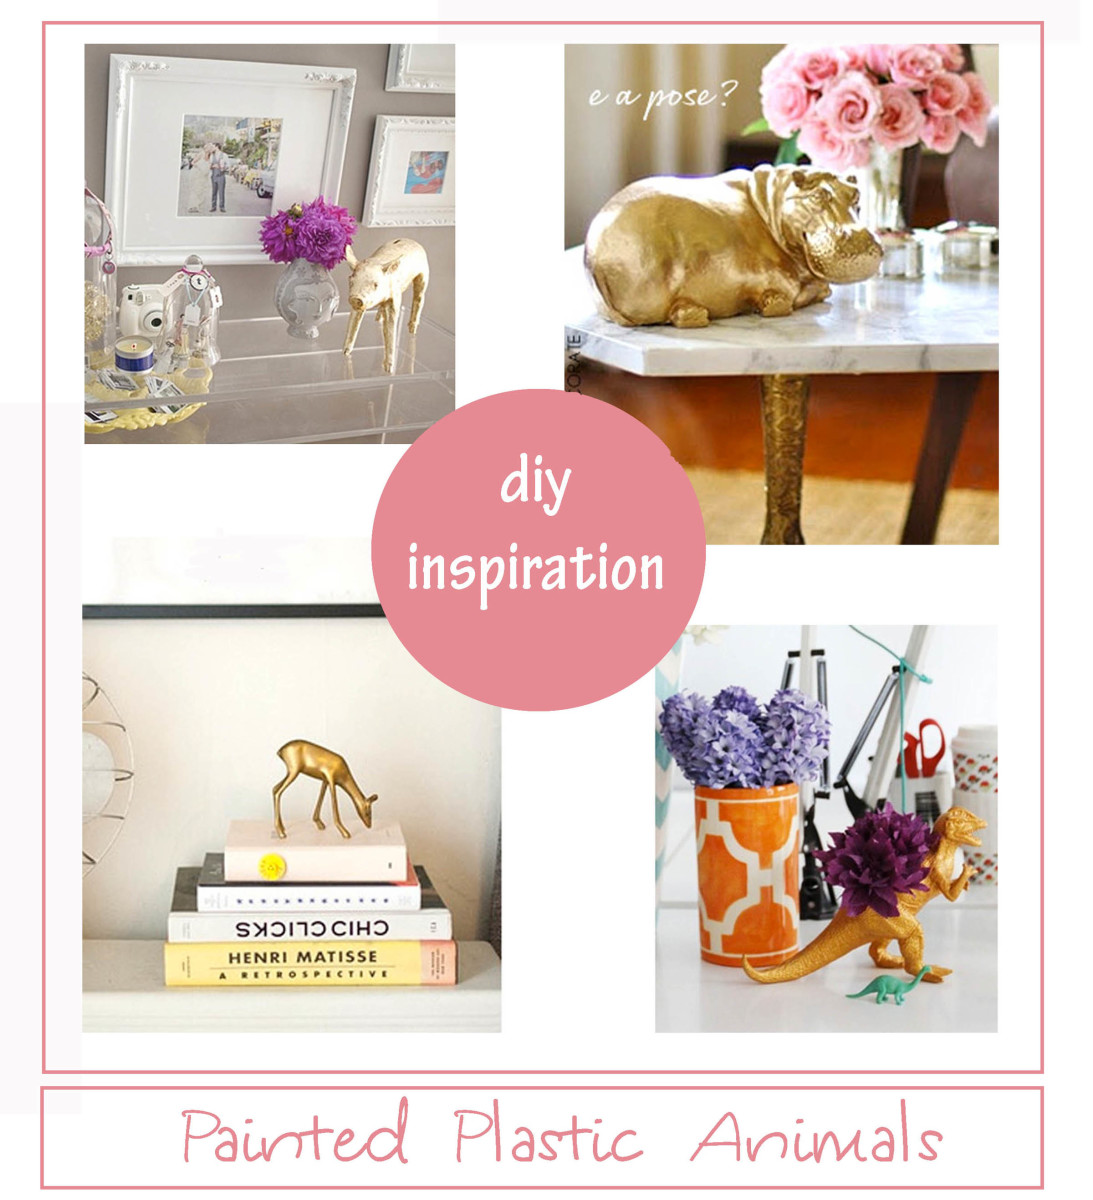 Painted Plastic Animals: DIY Inspiration for All Sorts of Celebrations!